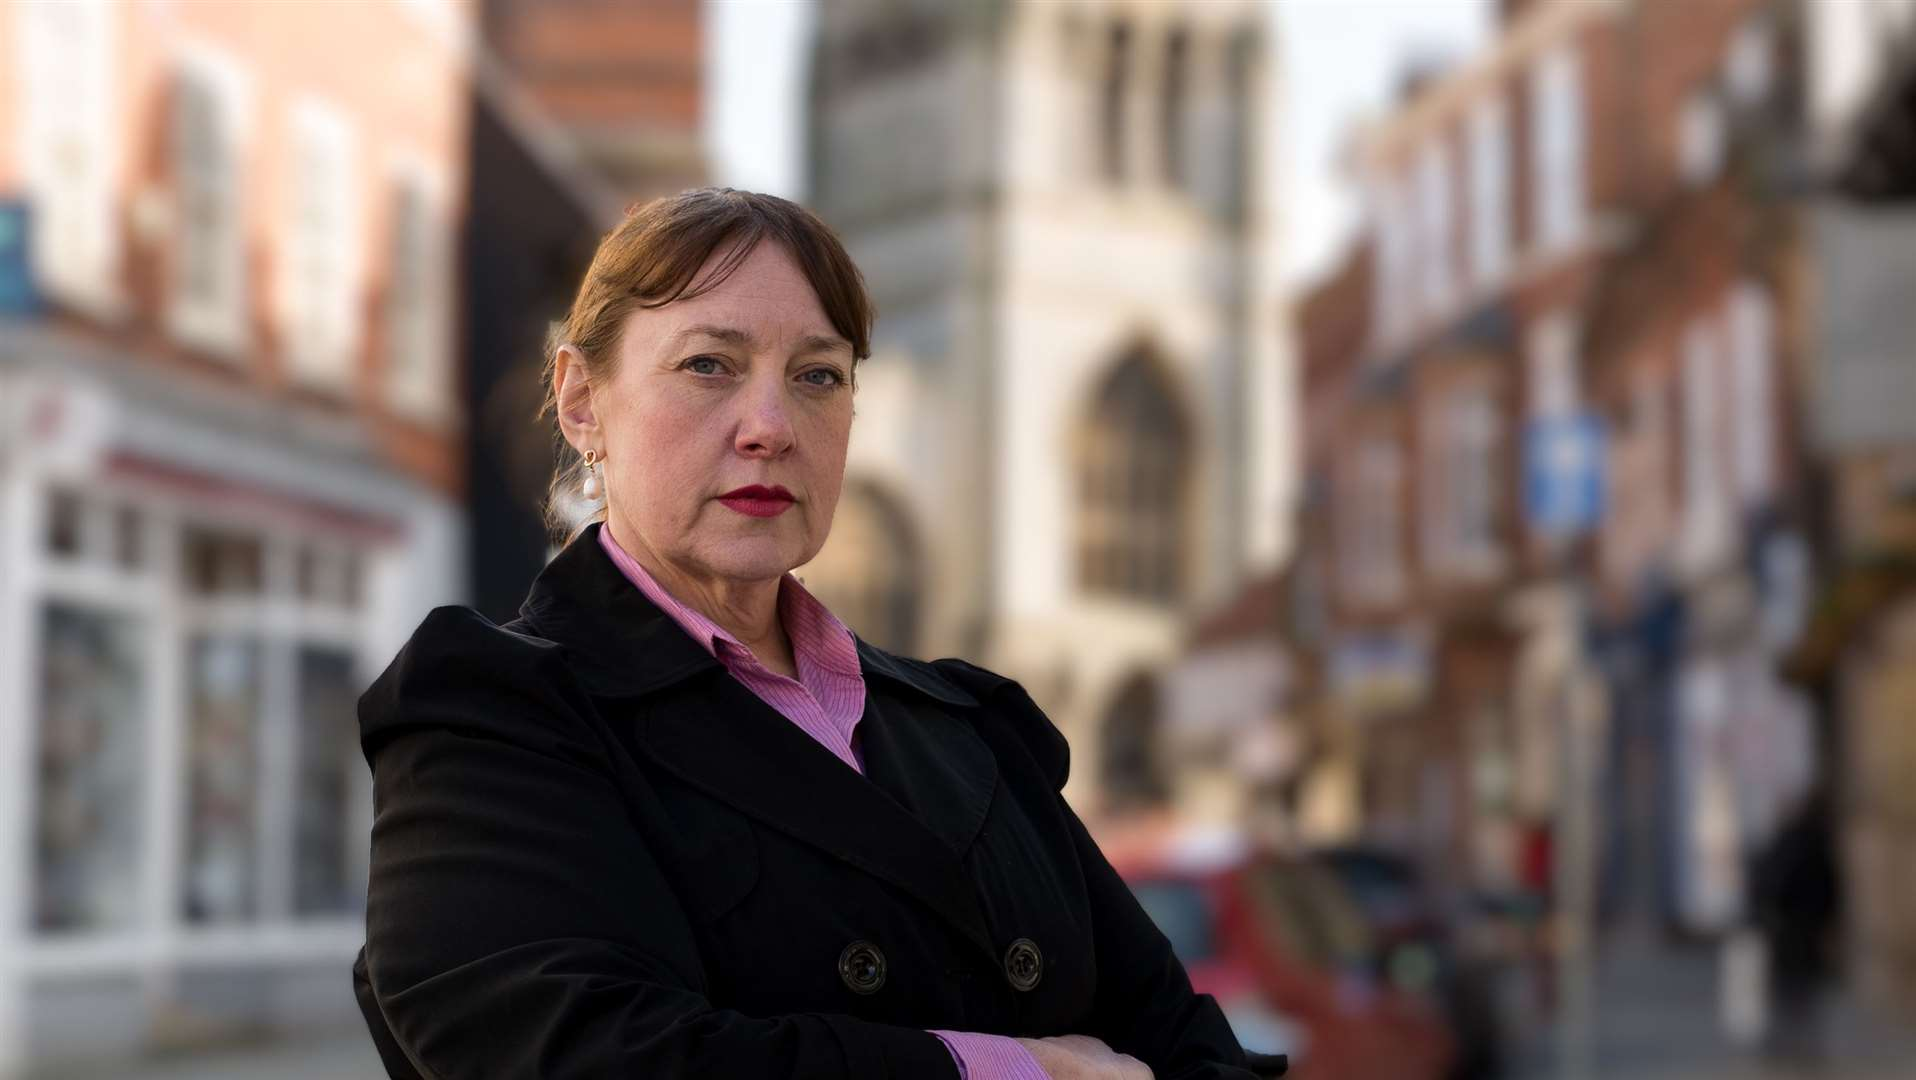 Caroline Henry, the Conservative candidate to become Nottinghamshire's Police and Crime Commissioner.